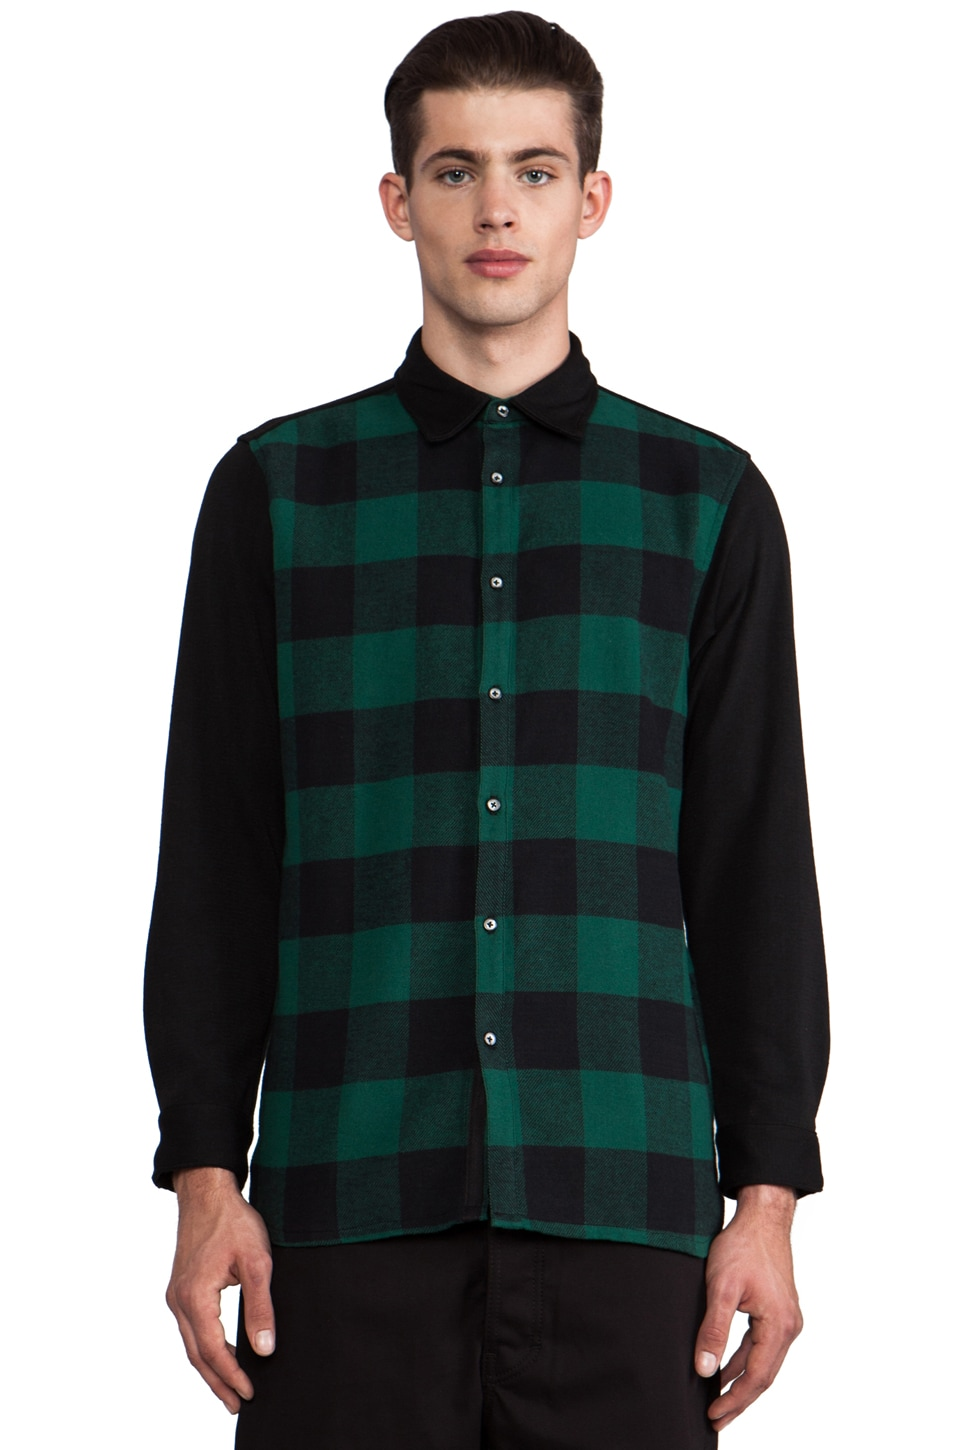 B:Scott Flannel Shirt Jacket in Green Plaid/Black